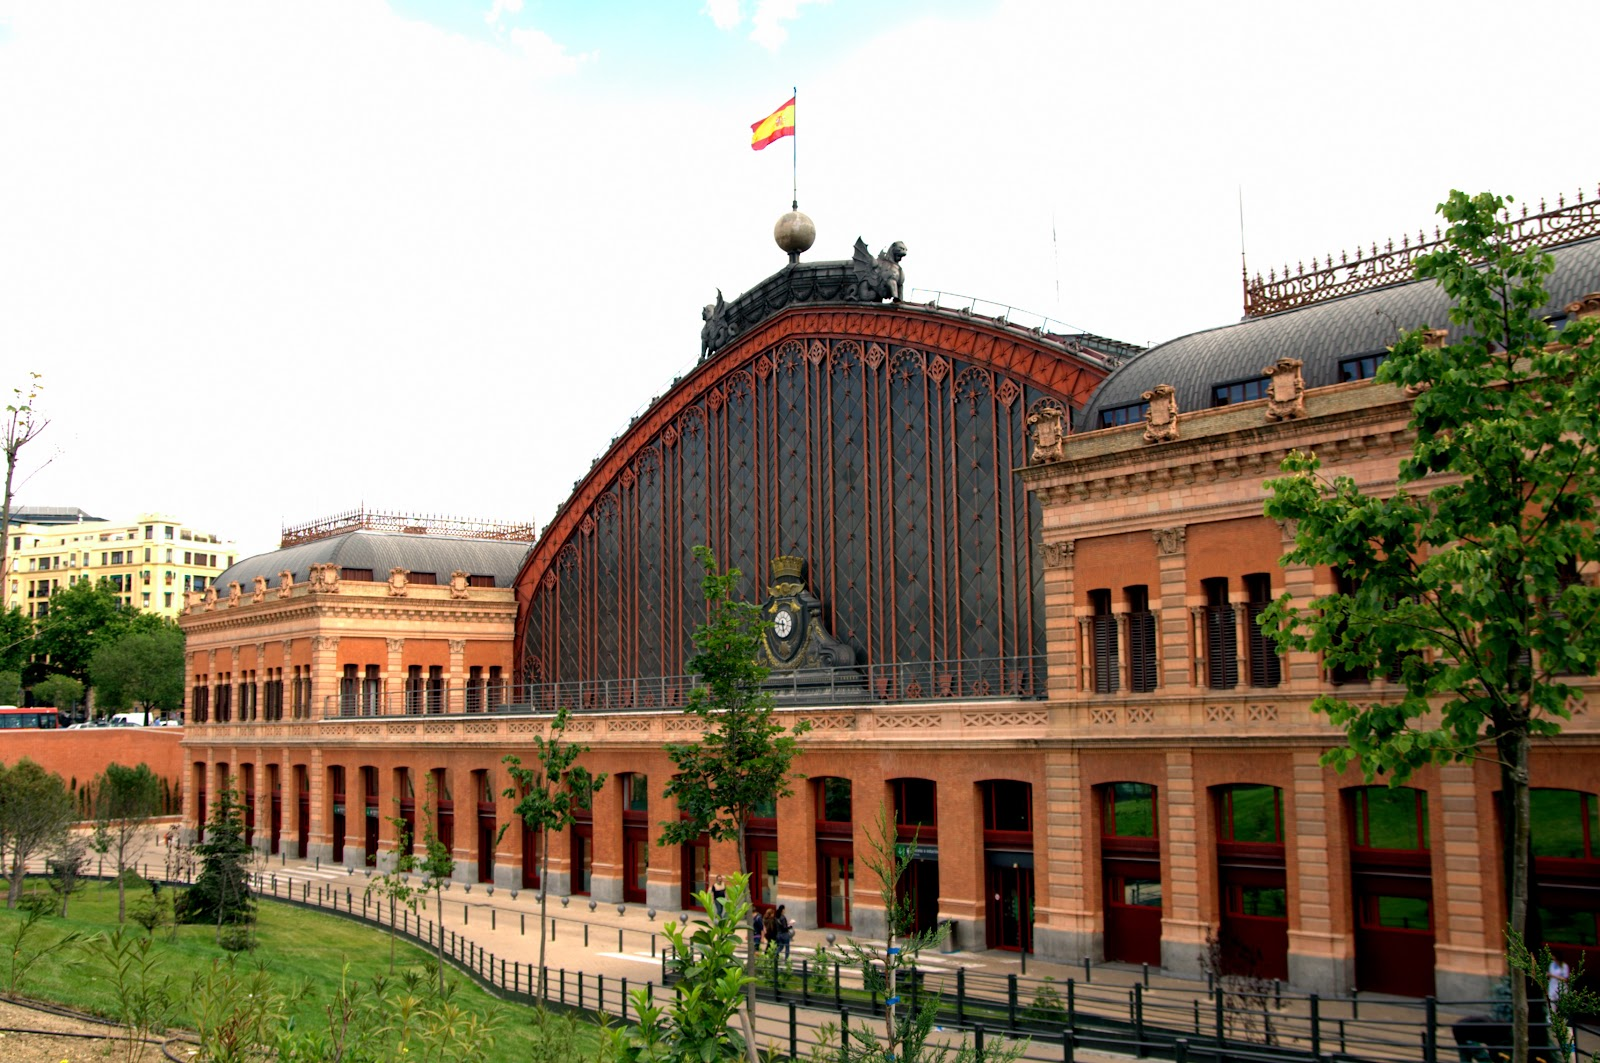 Estación_de_Atocha_(Madrid)_12.jpg